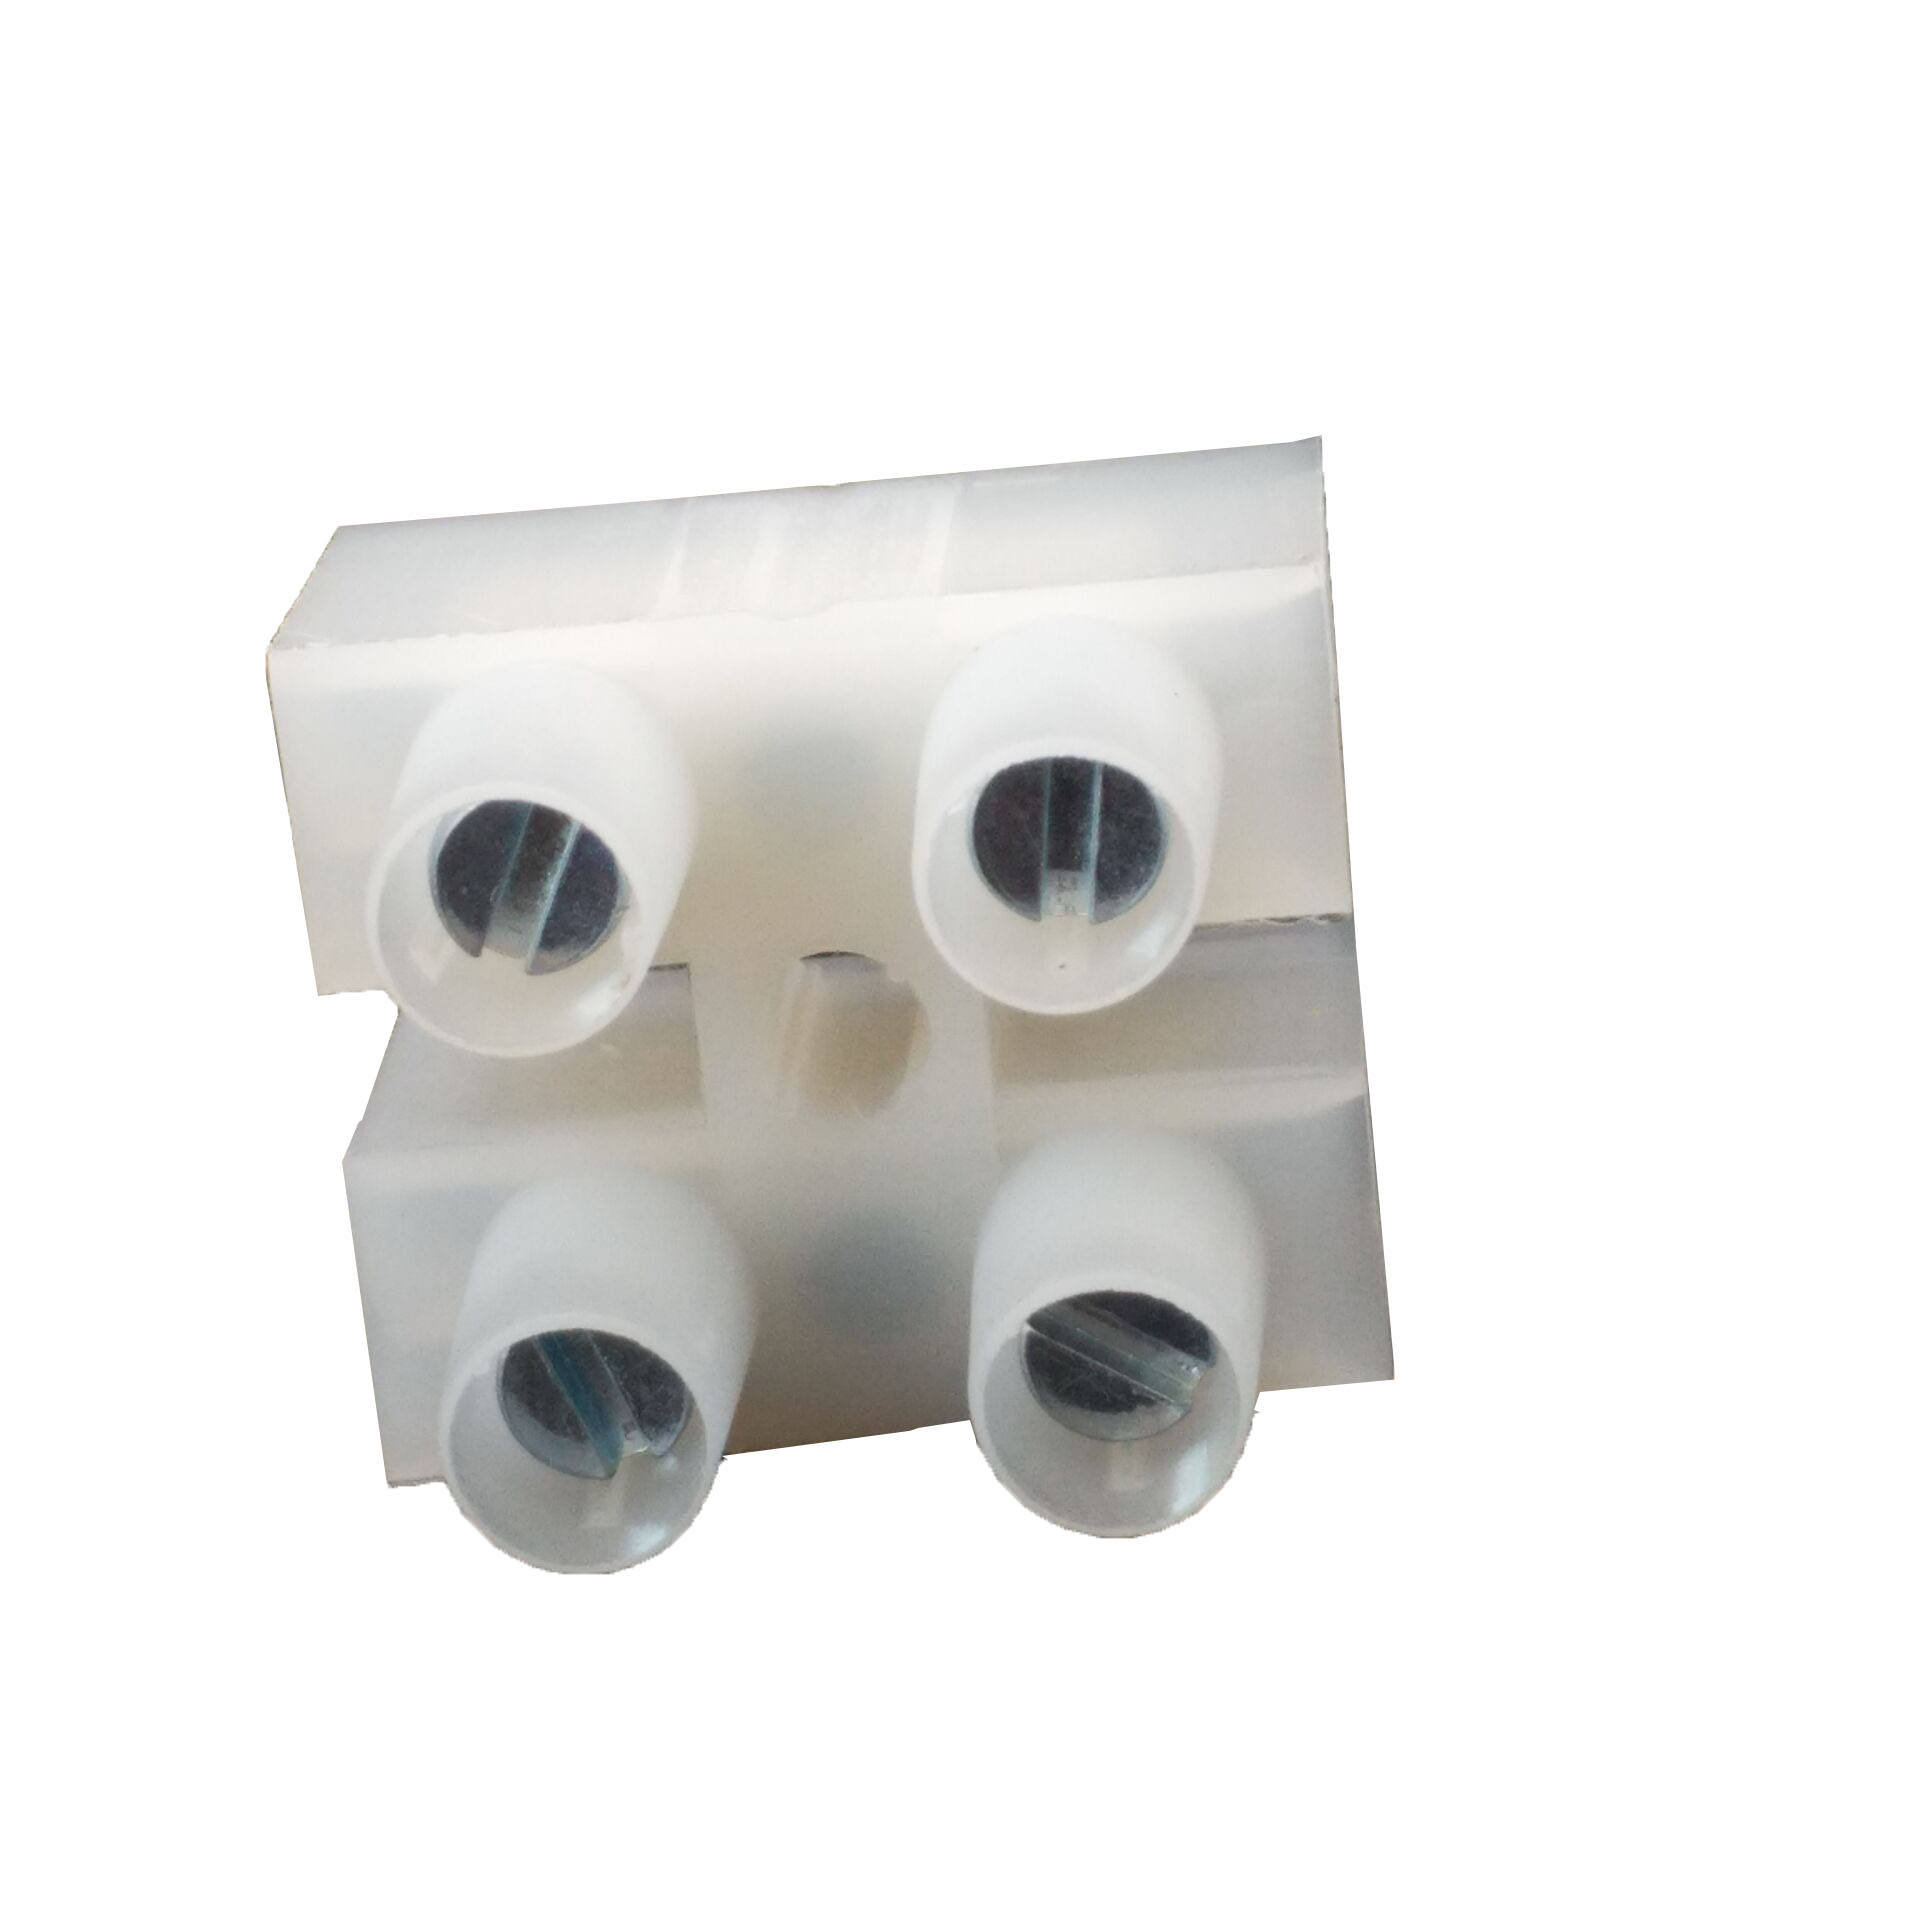 Eletricall draad connector 2 row 4 pin vermeld onderdelen